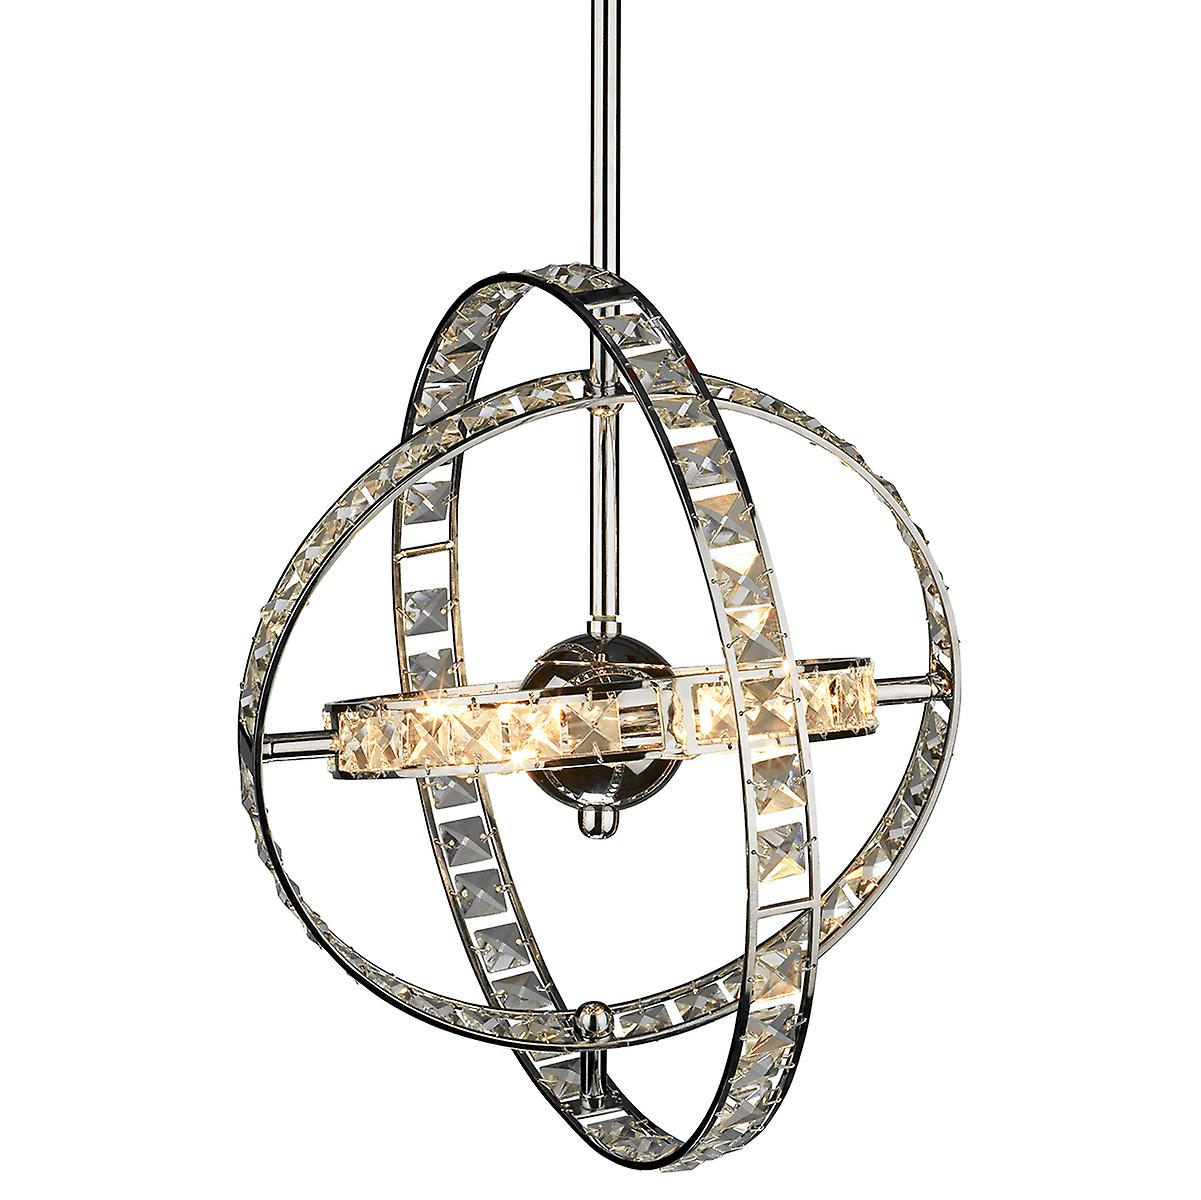 Dar ETE0650 Eternity Modern 6 Light Crystal Ceiling Pendant - 65cm